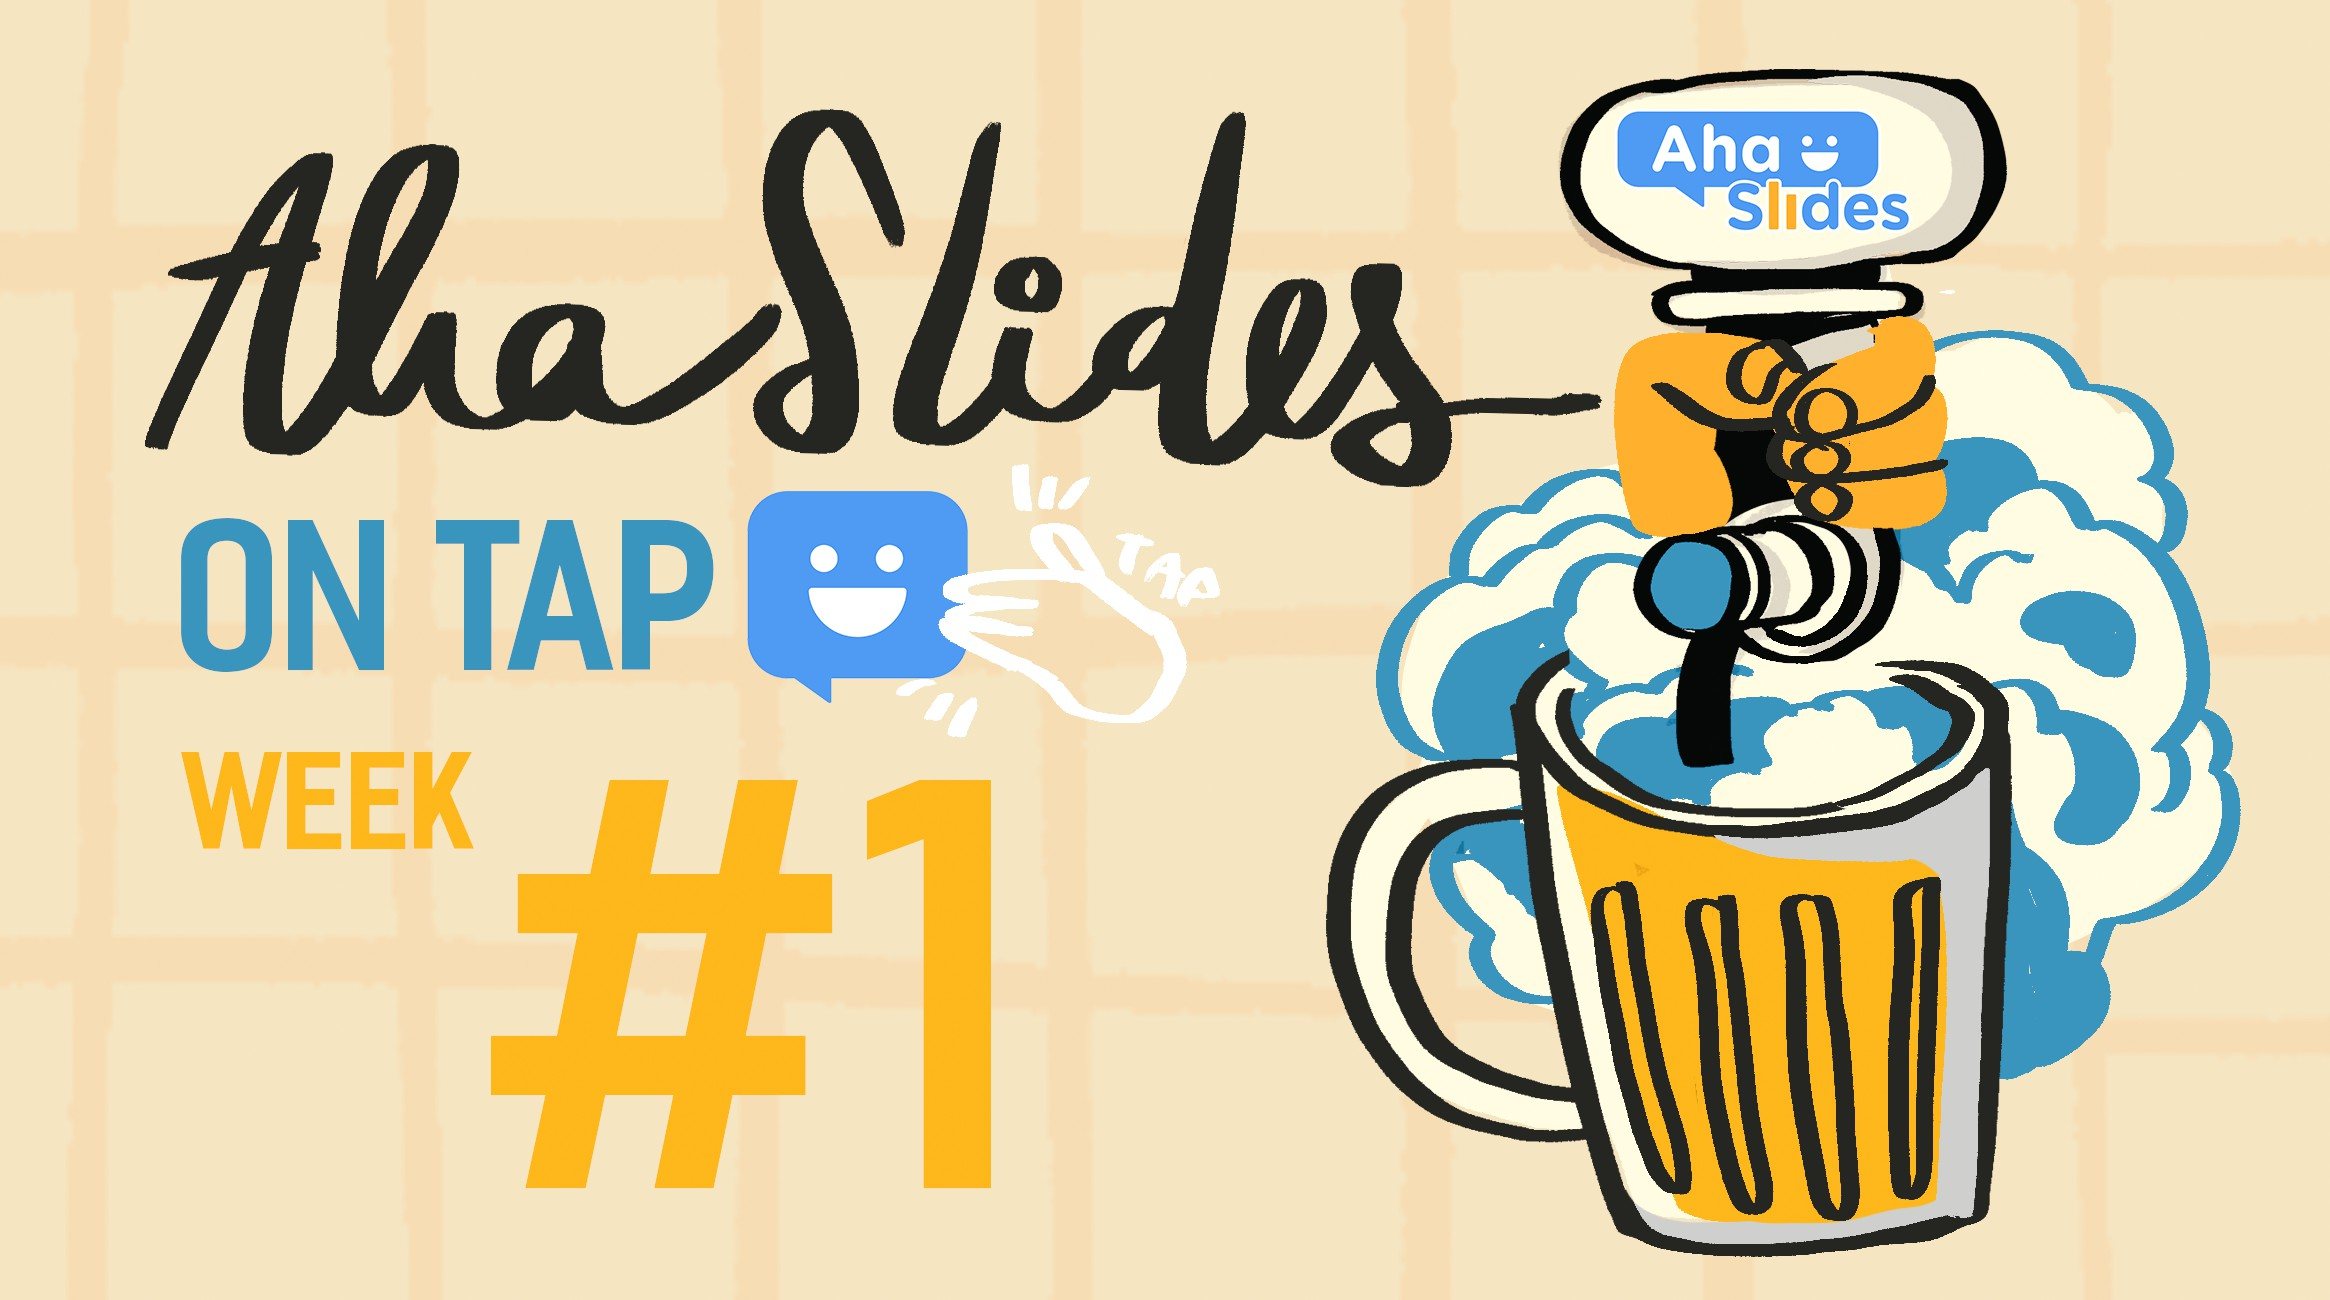 40 Pub Quiz Questions and Answers: AhaSlides on Tap #1 (Free Download!)